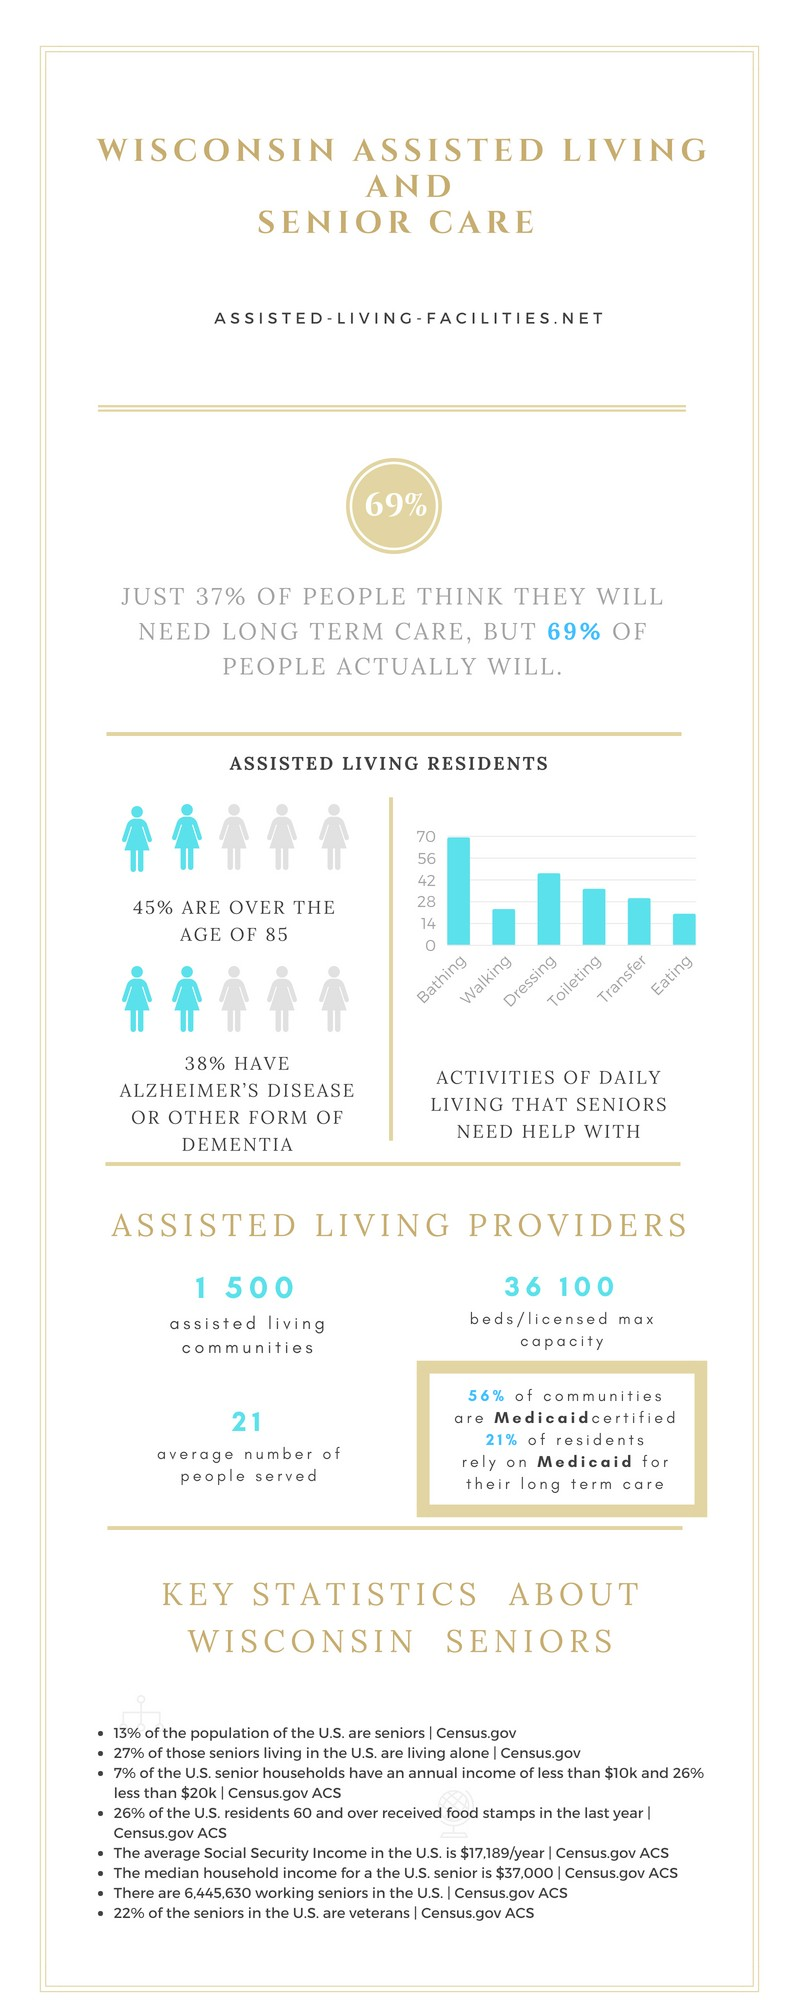 Assisted living in Wisconsin